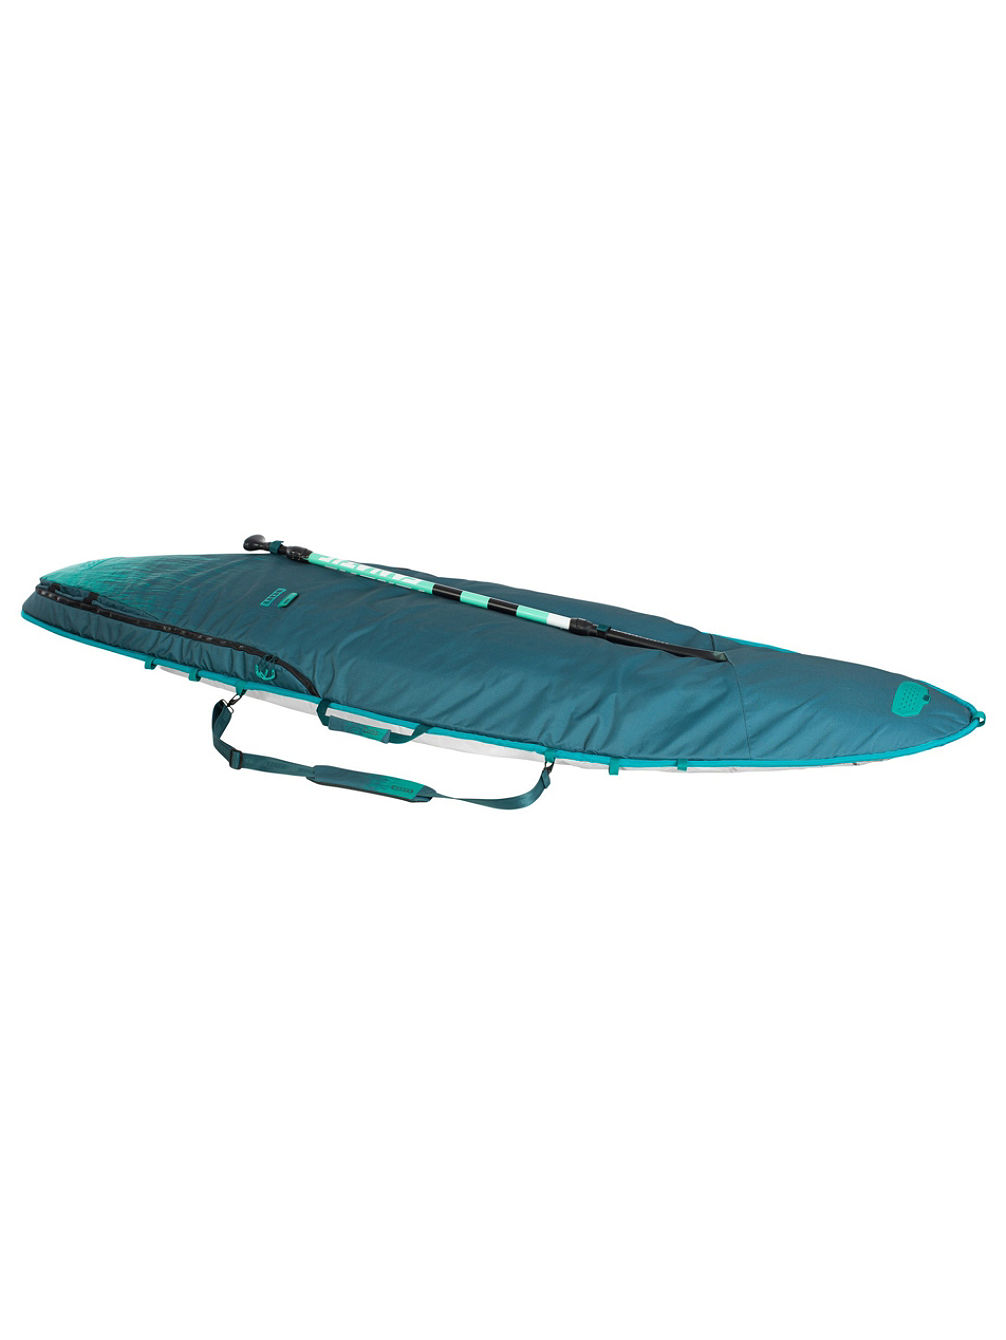 SUP TEC 10'0x33'' Boardbag